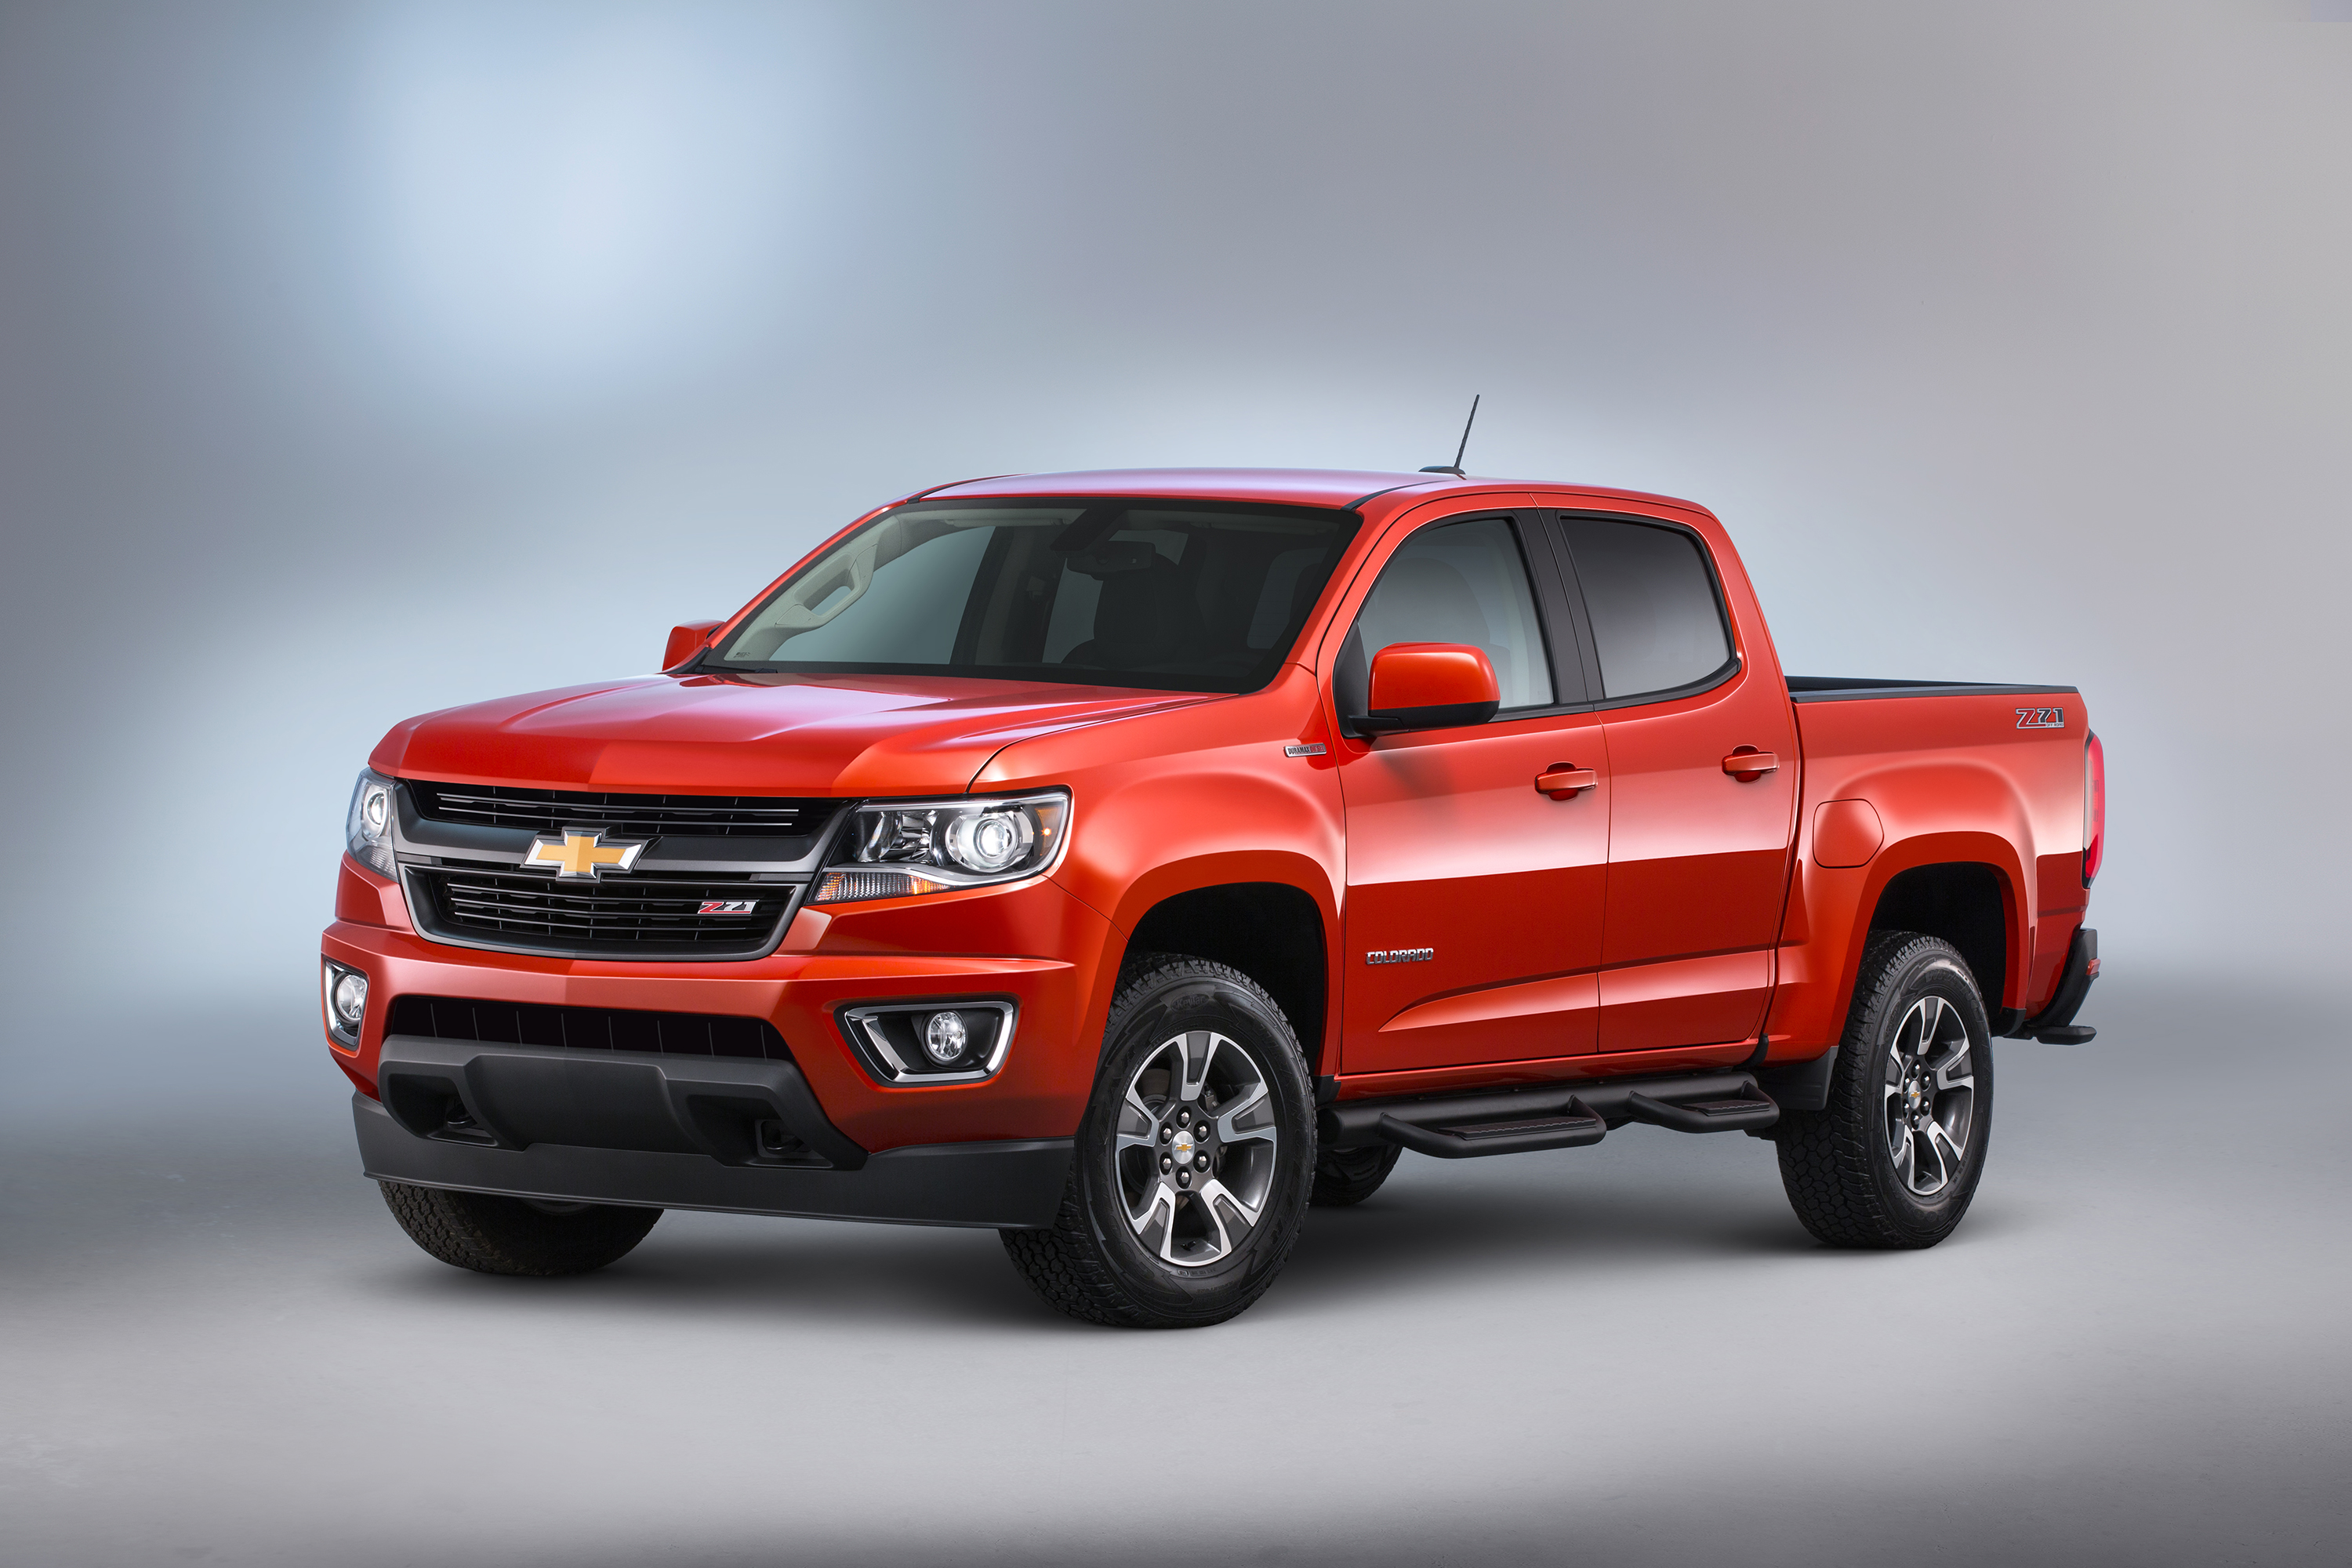 2016-Chevrolet-Colorado-Duramax-TurboDiesel-048 Cool Review About Chevy S10 tow Capacity with Breathtaking Gallery Cars Review